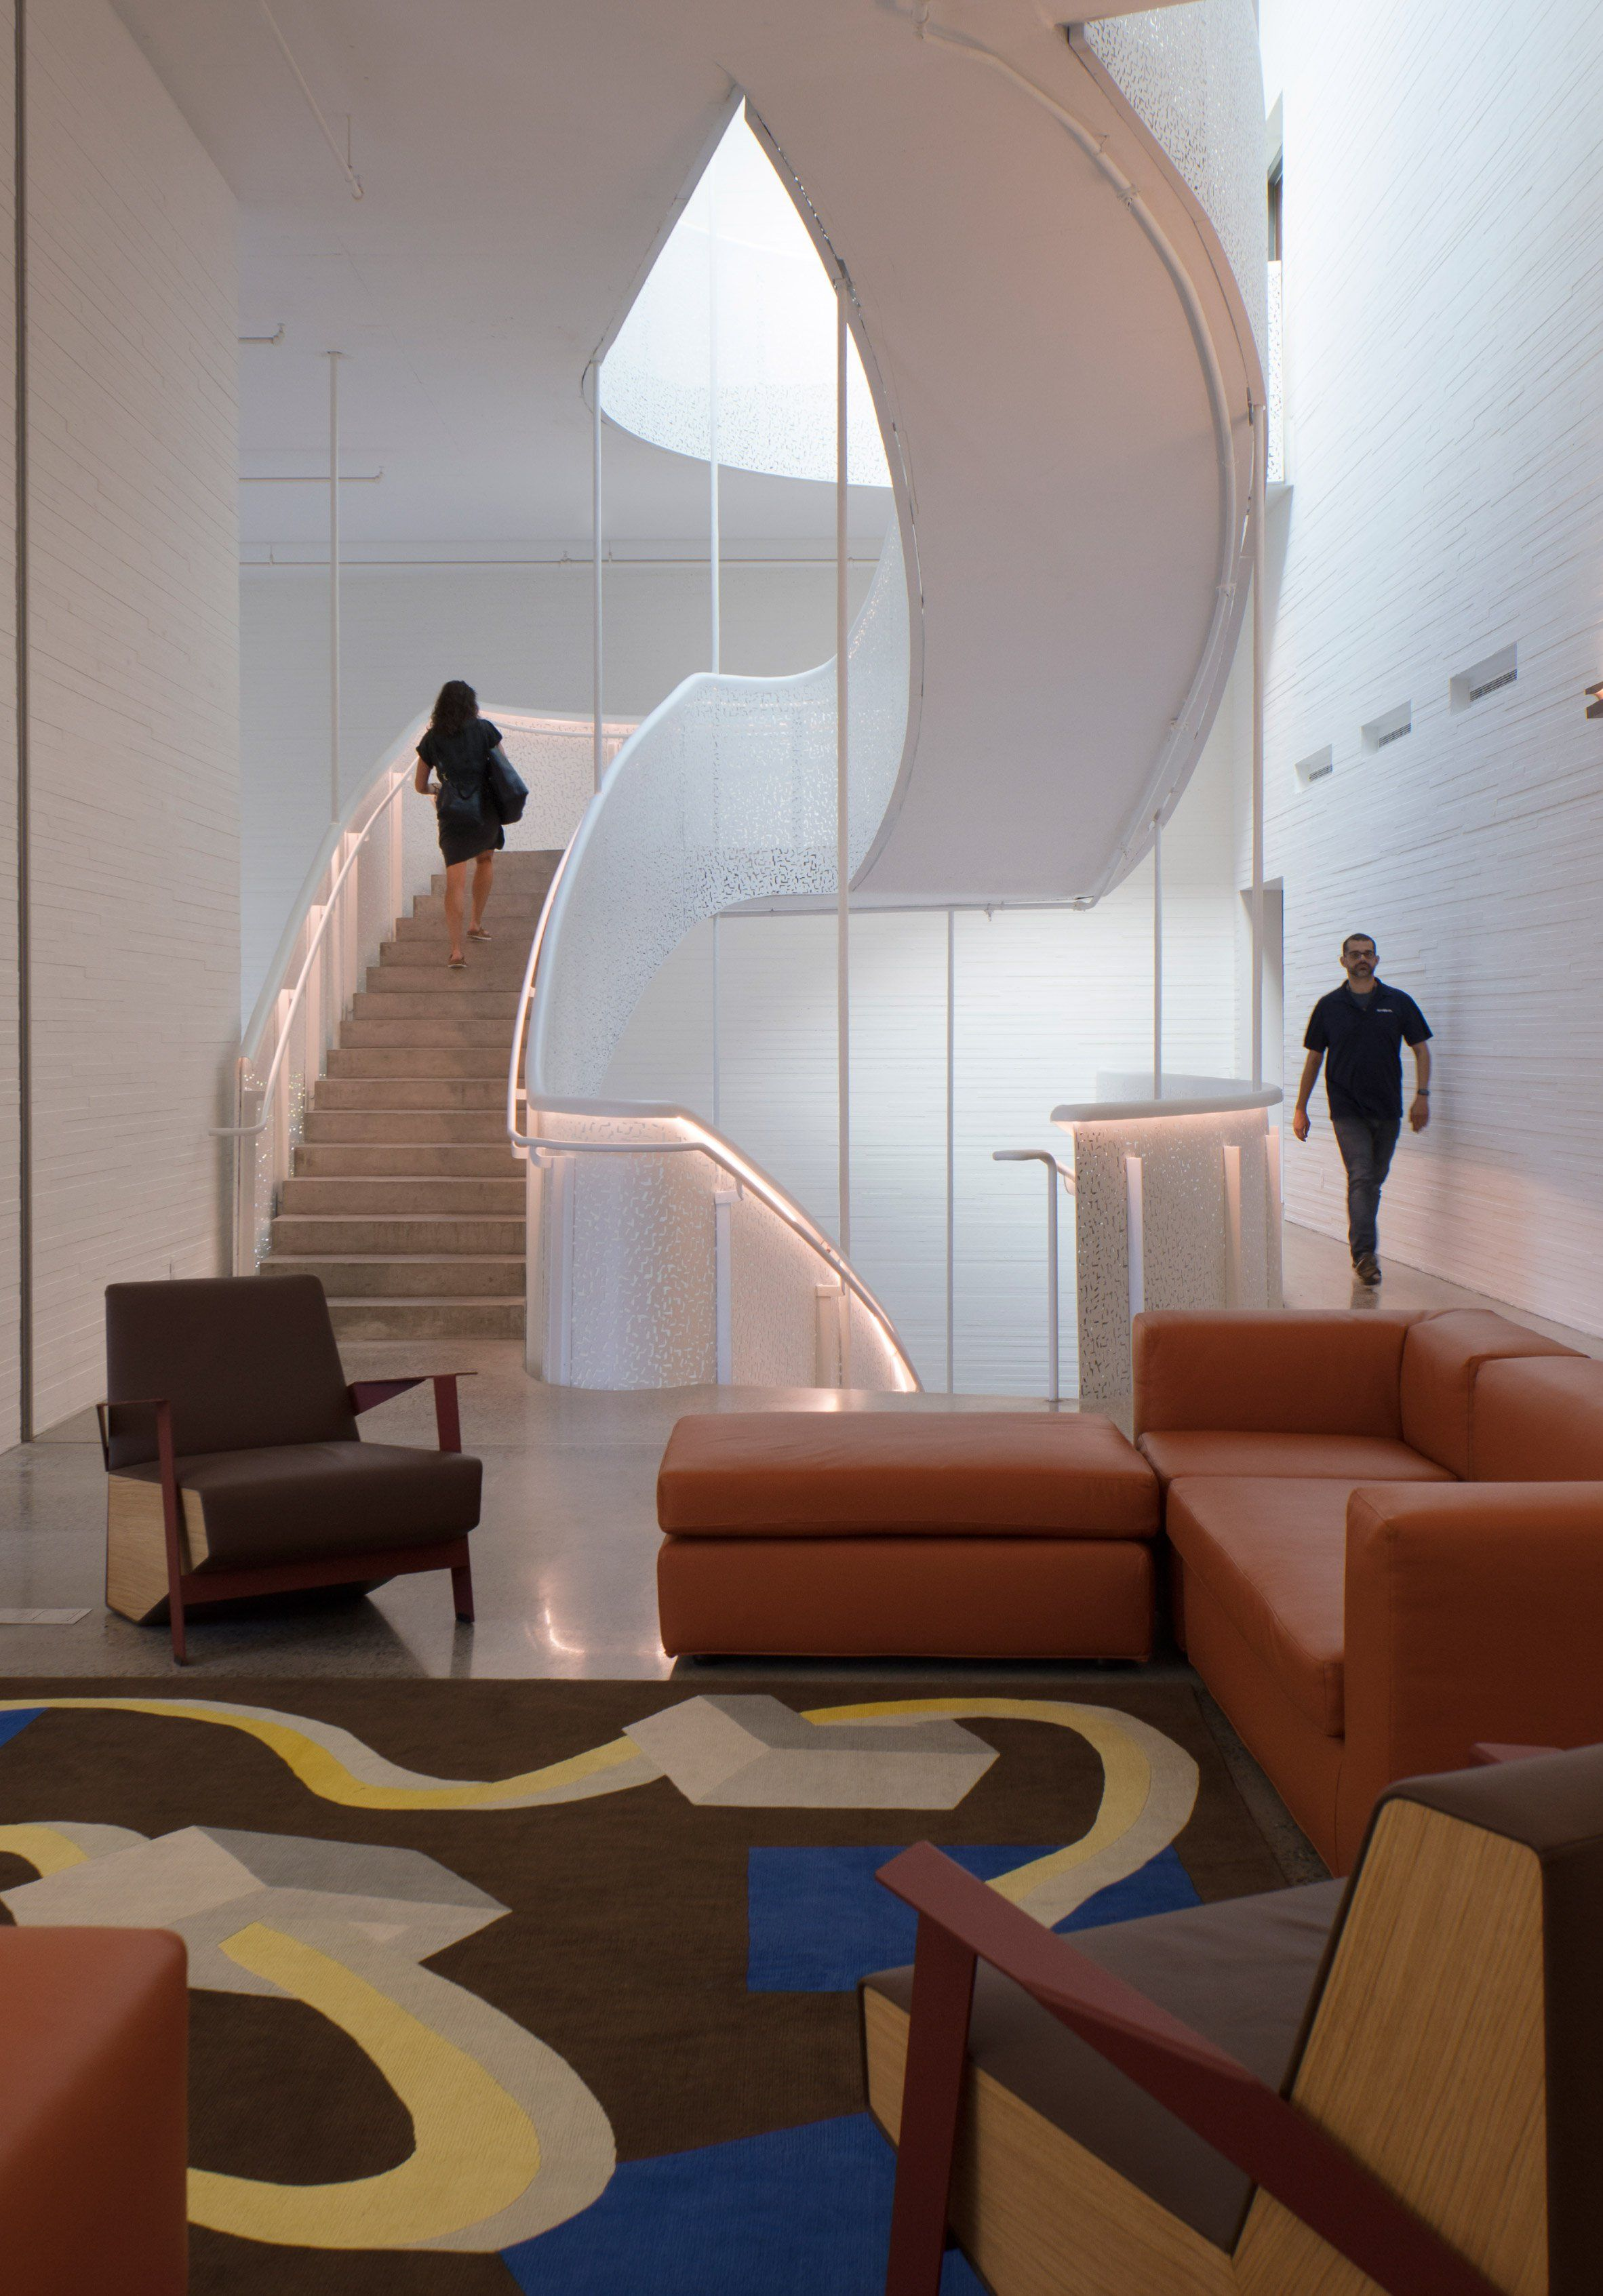 Lewis arts complex at princeton university by steven holl architects interior architecture stairs also best style steps images hand railing rh pinterest